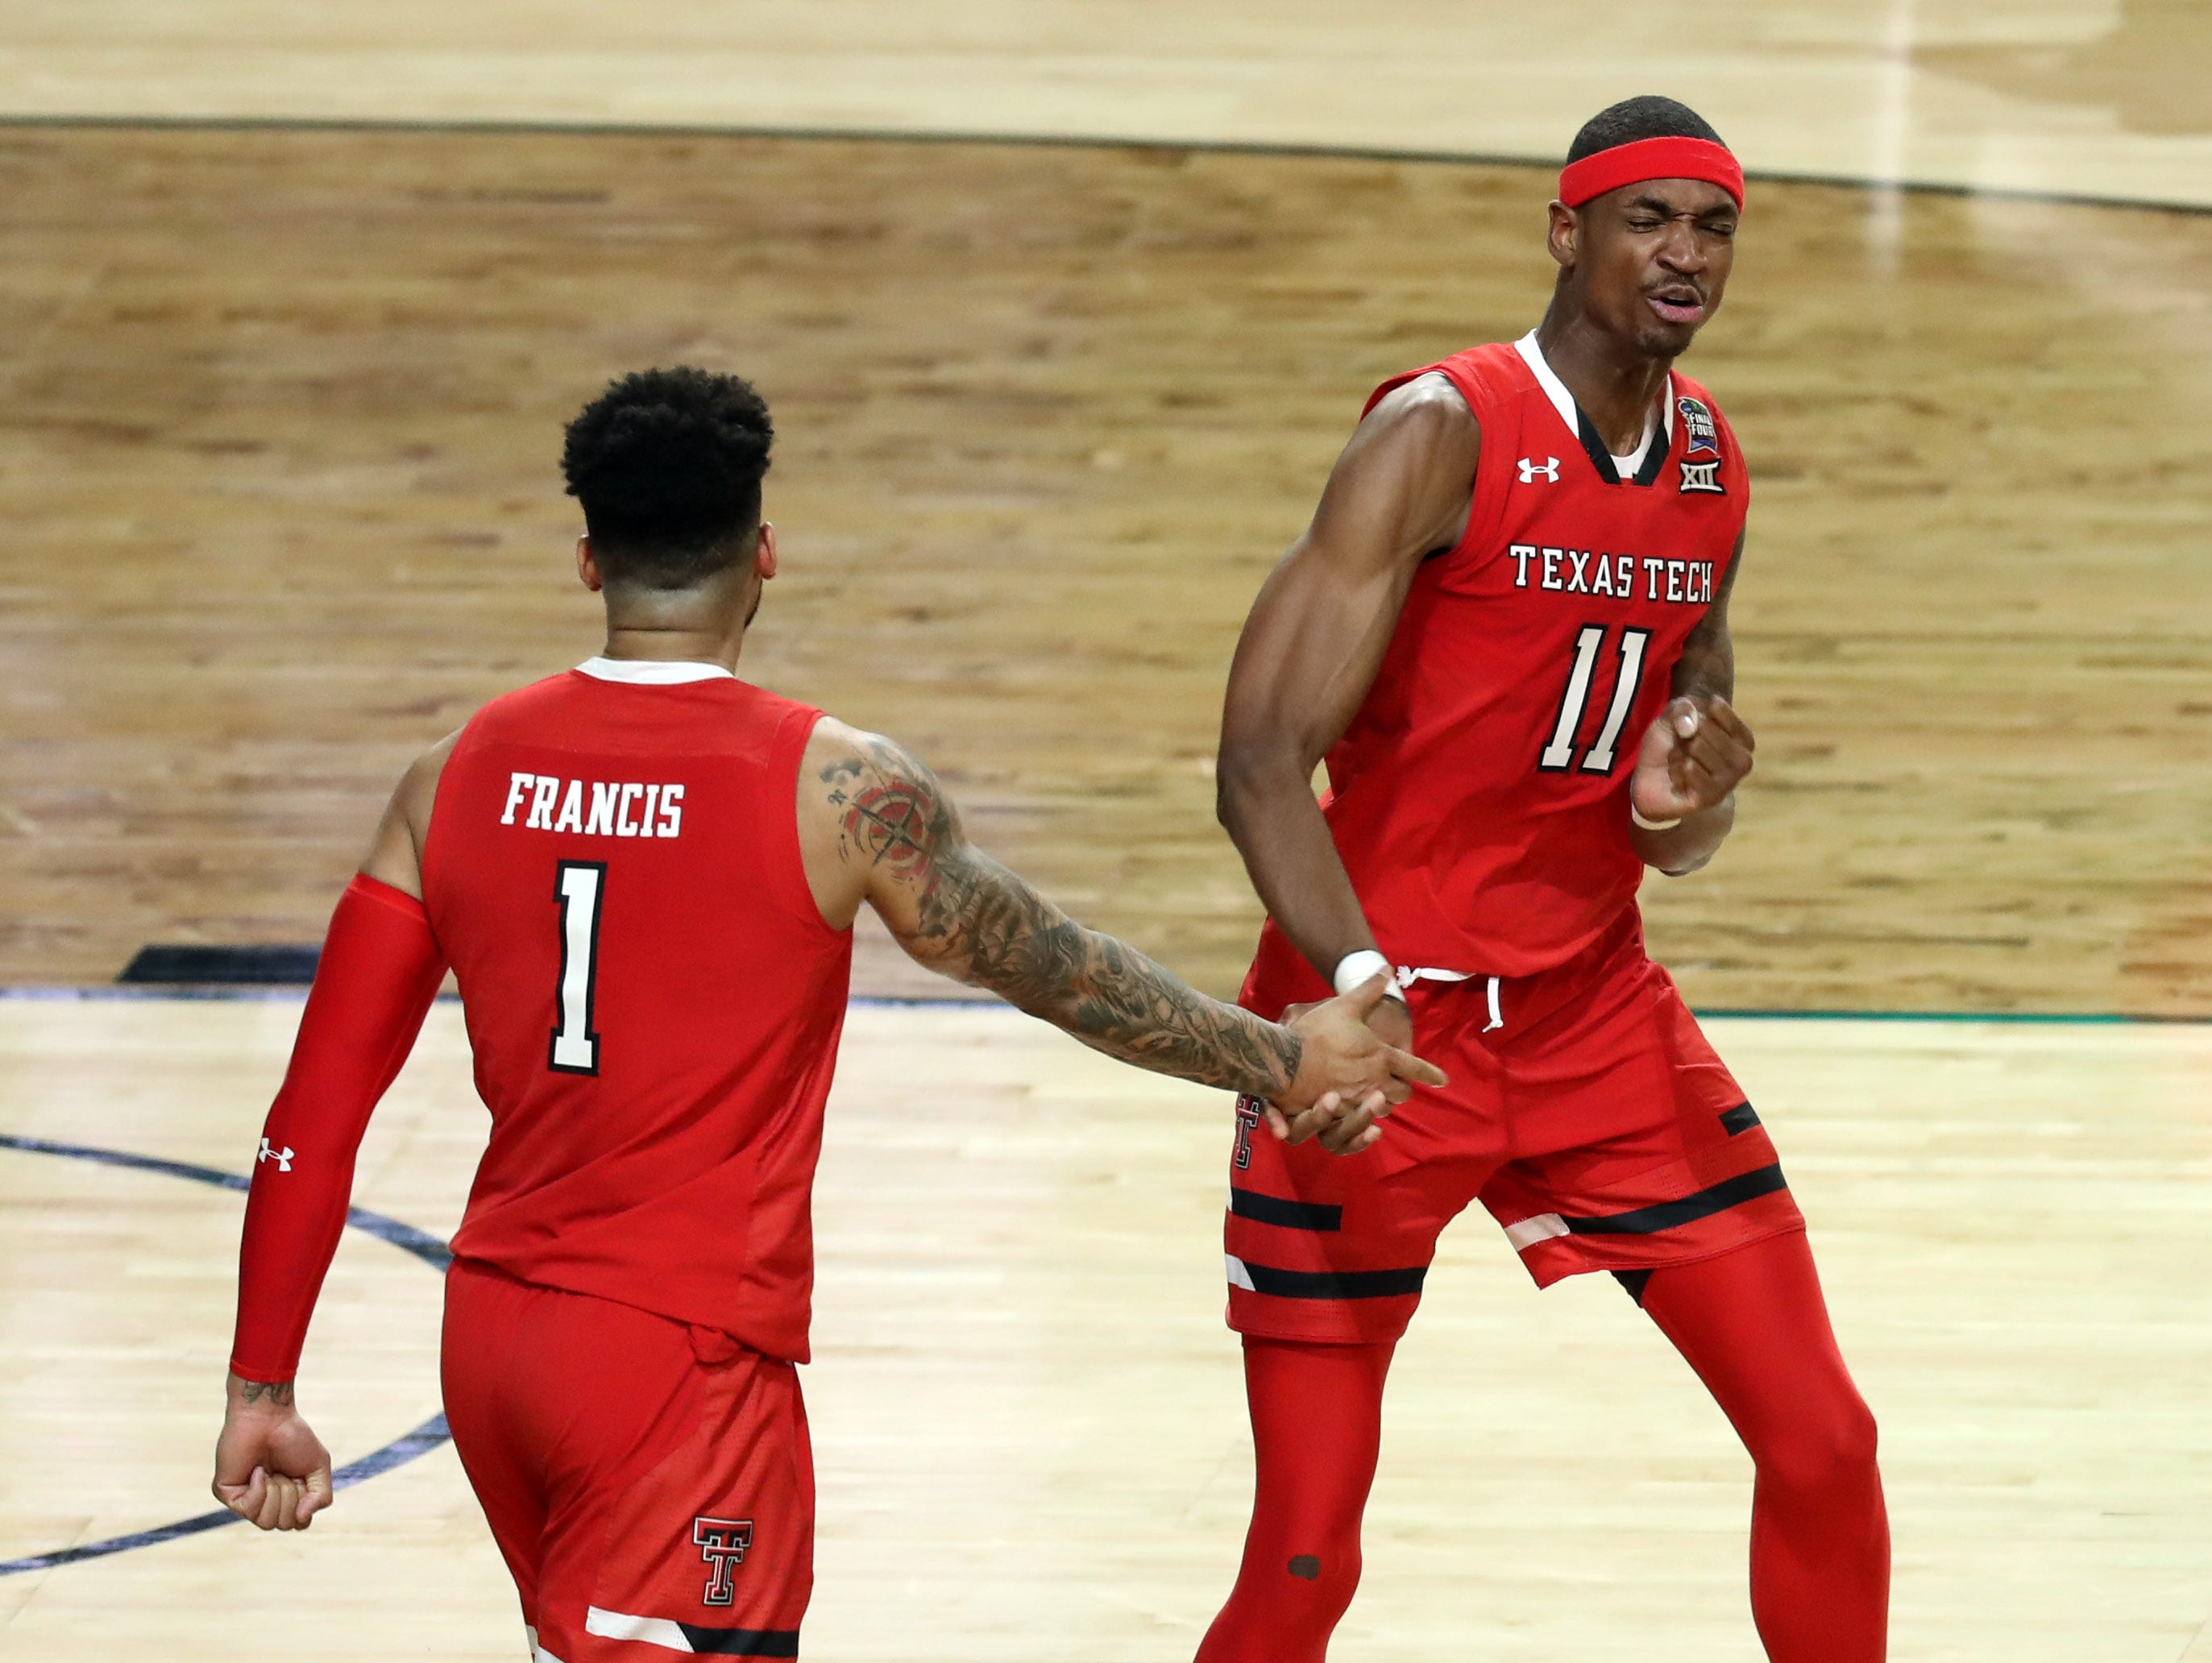 Apr 8, 2019; Minneapolis, MN, USA; Texas Tech Red Raiders forward Tariq Owens (11) celebrates with  uard Brandone Francis (1) after dunking the ball against the Virginia Cavaliers in the championship game of the 2019 men's Final Four at US Bank Stadium. Mandatory Credit: Brace Hemmelgarn-USA TODAY Sports